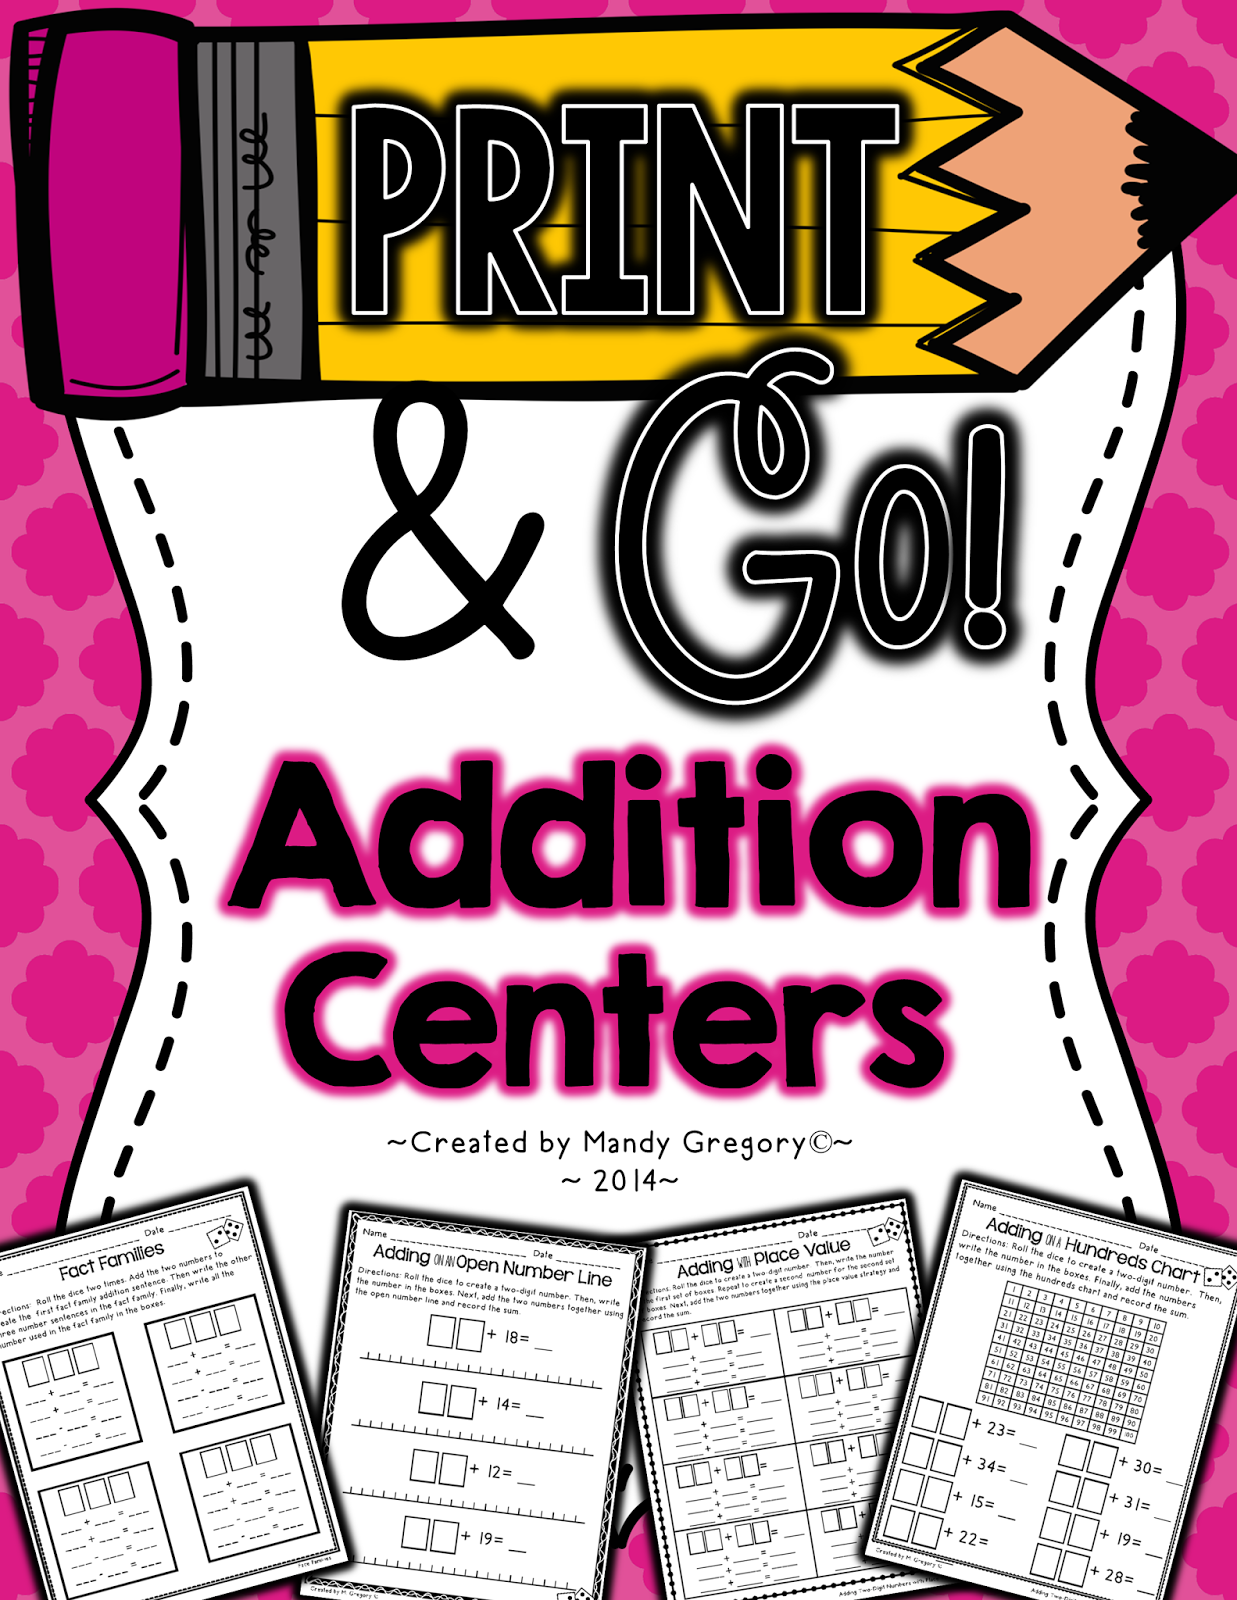 https://www.teacherspayteachers.com/Product/Addition-Centers-Print-and-Go-Series-1443148